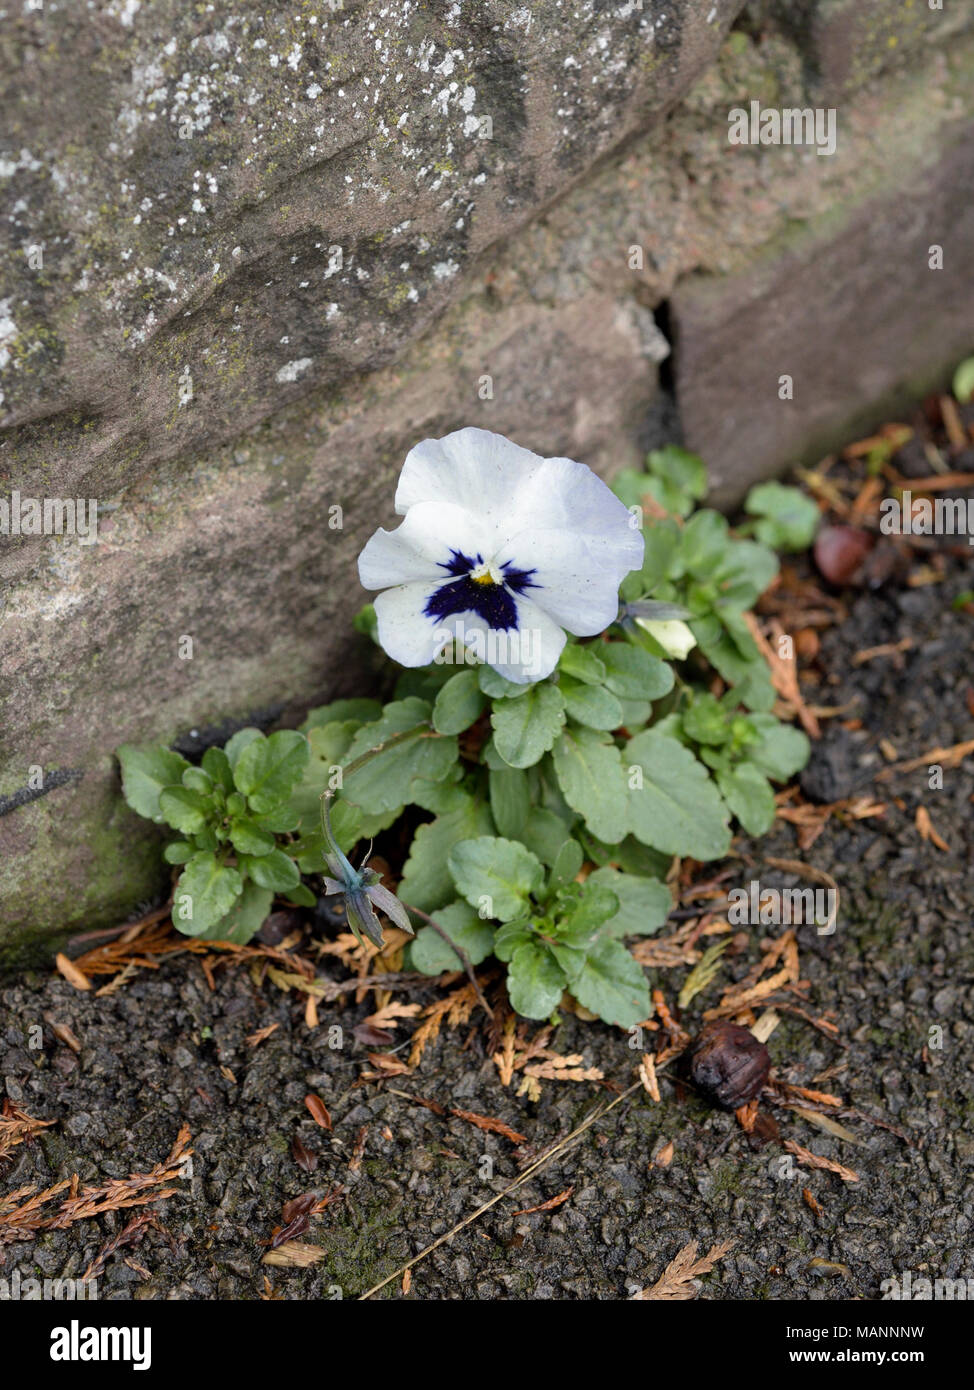 Garden Pansy, Viola x wittrockiana growing by a wall - Stock Image